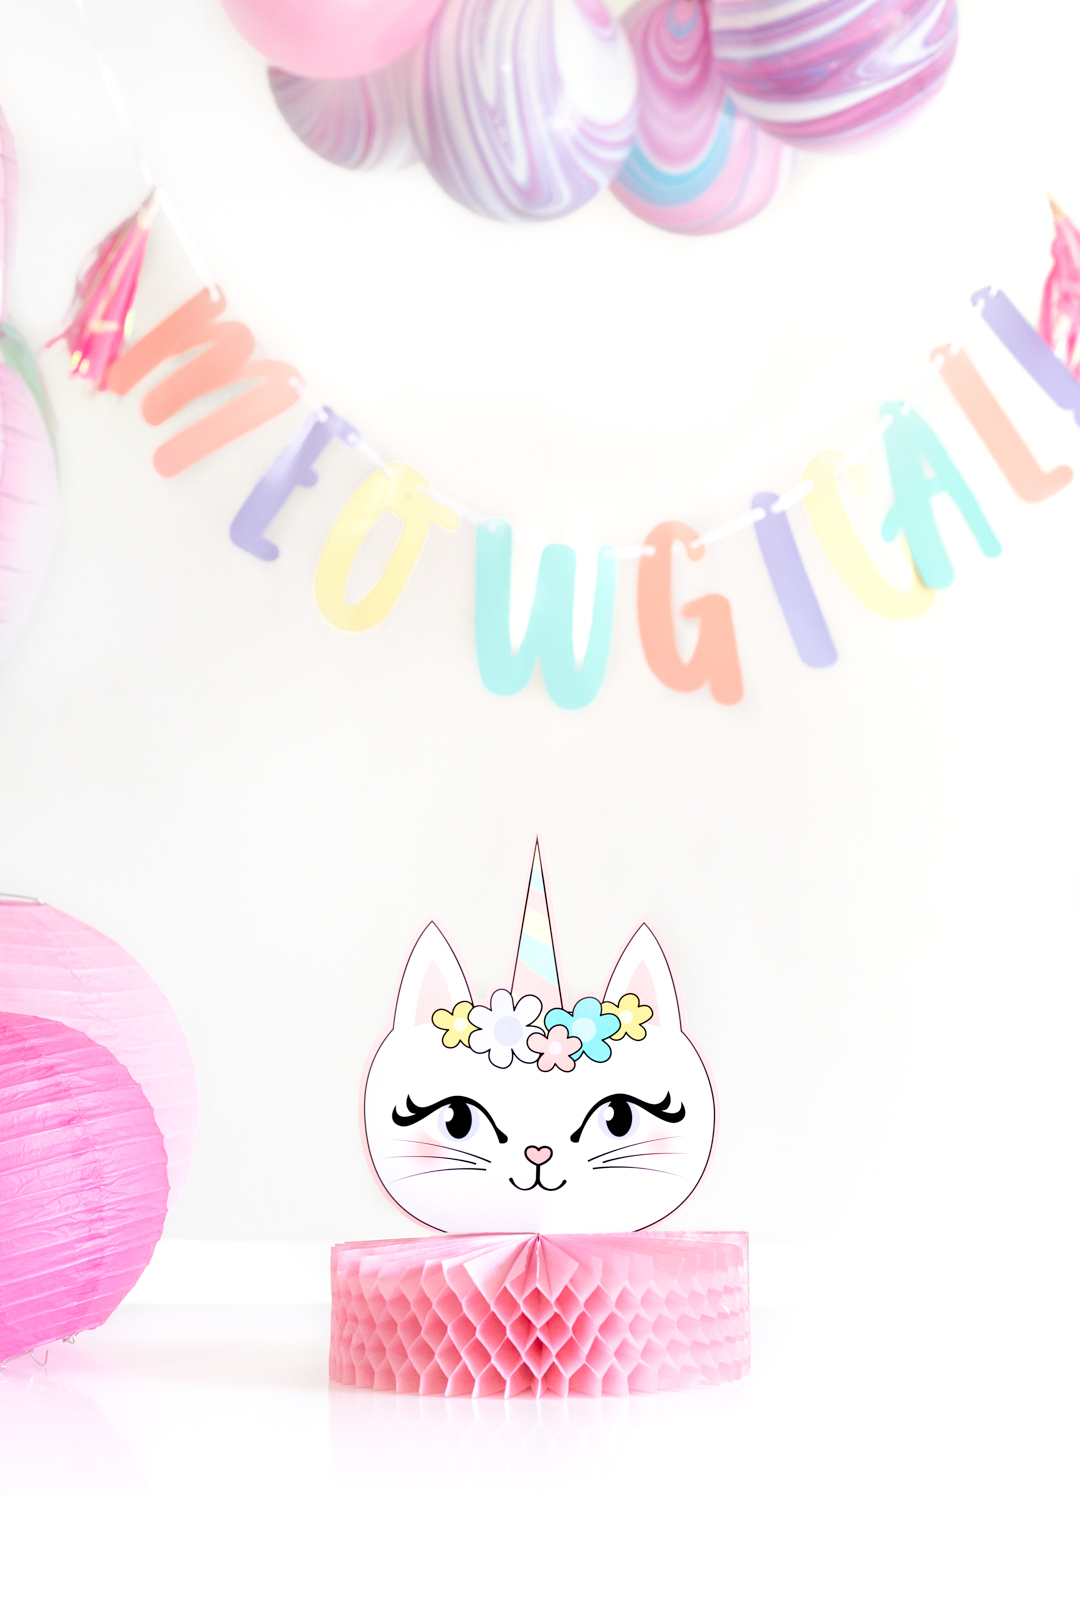 caticorn table centerpiece for parties